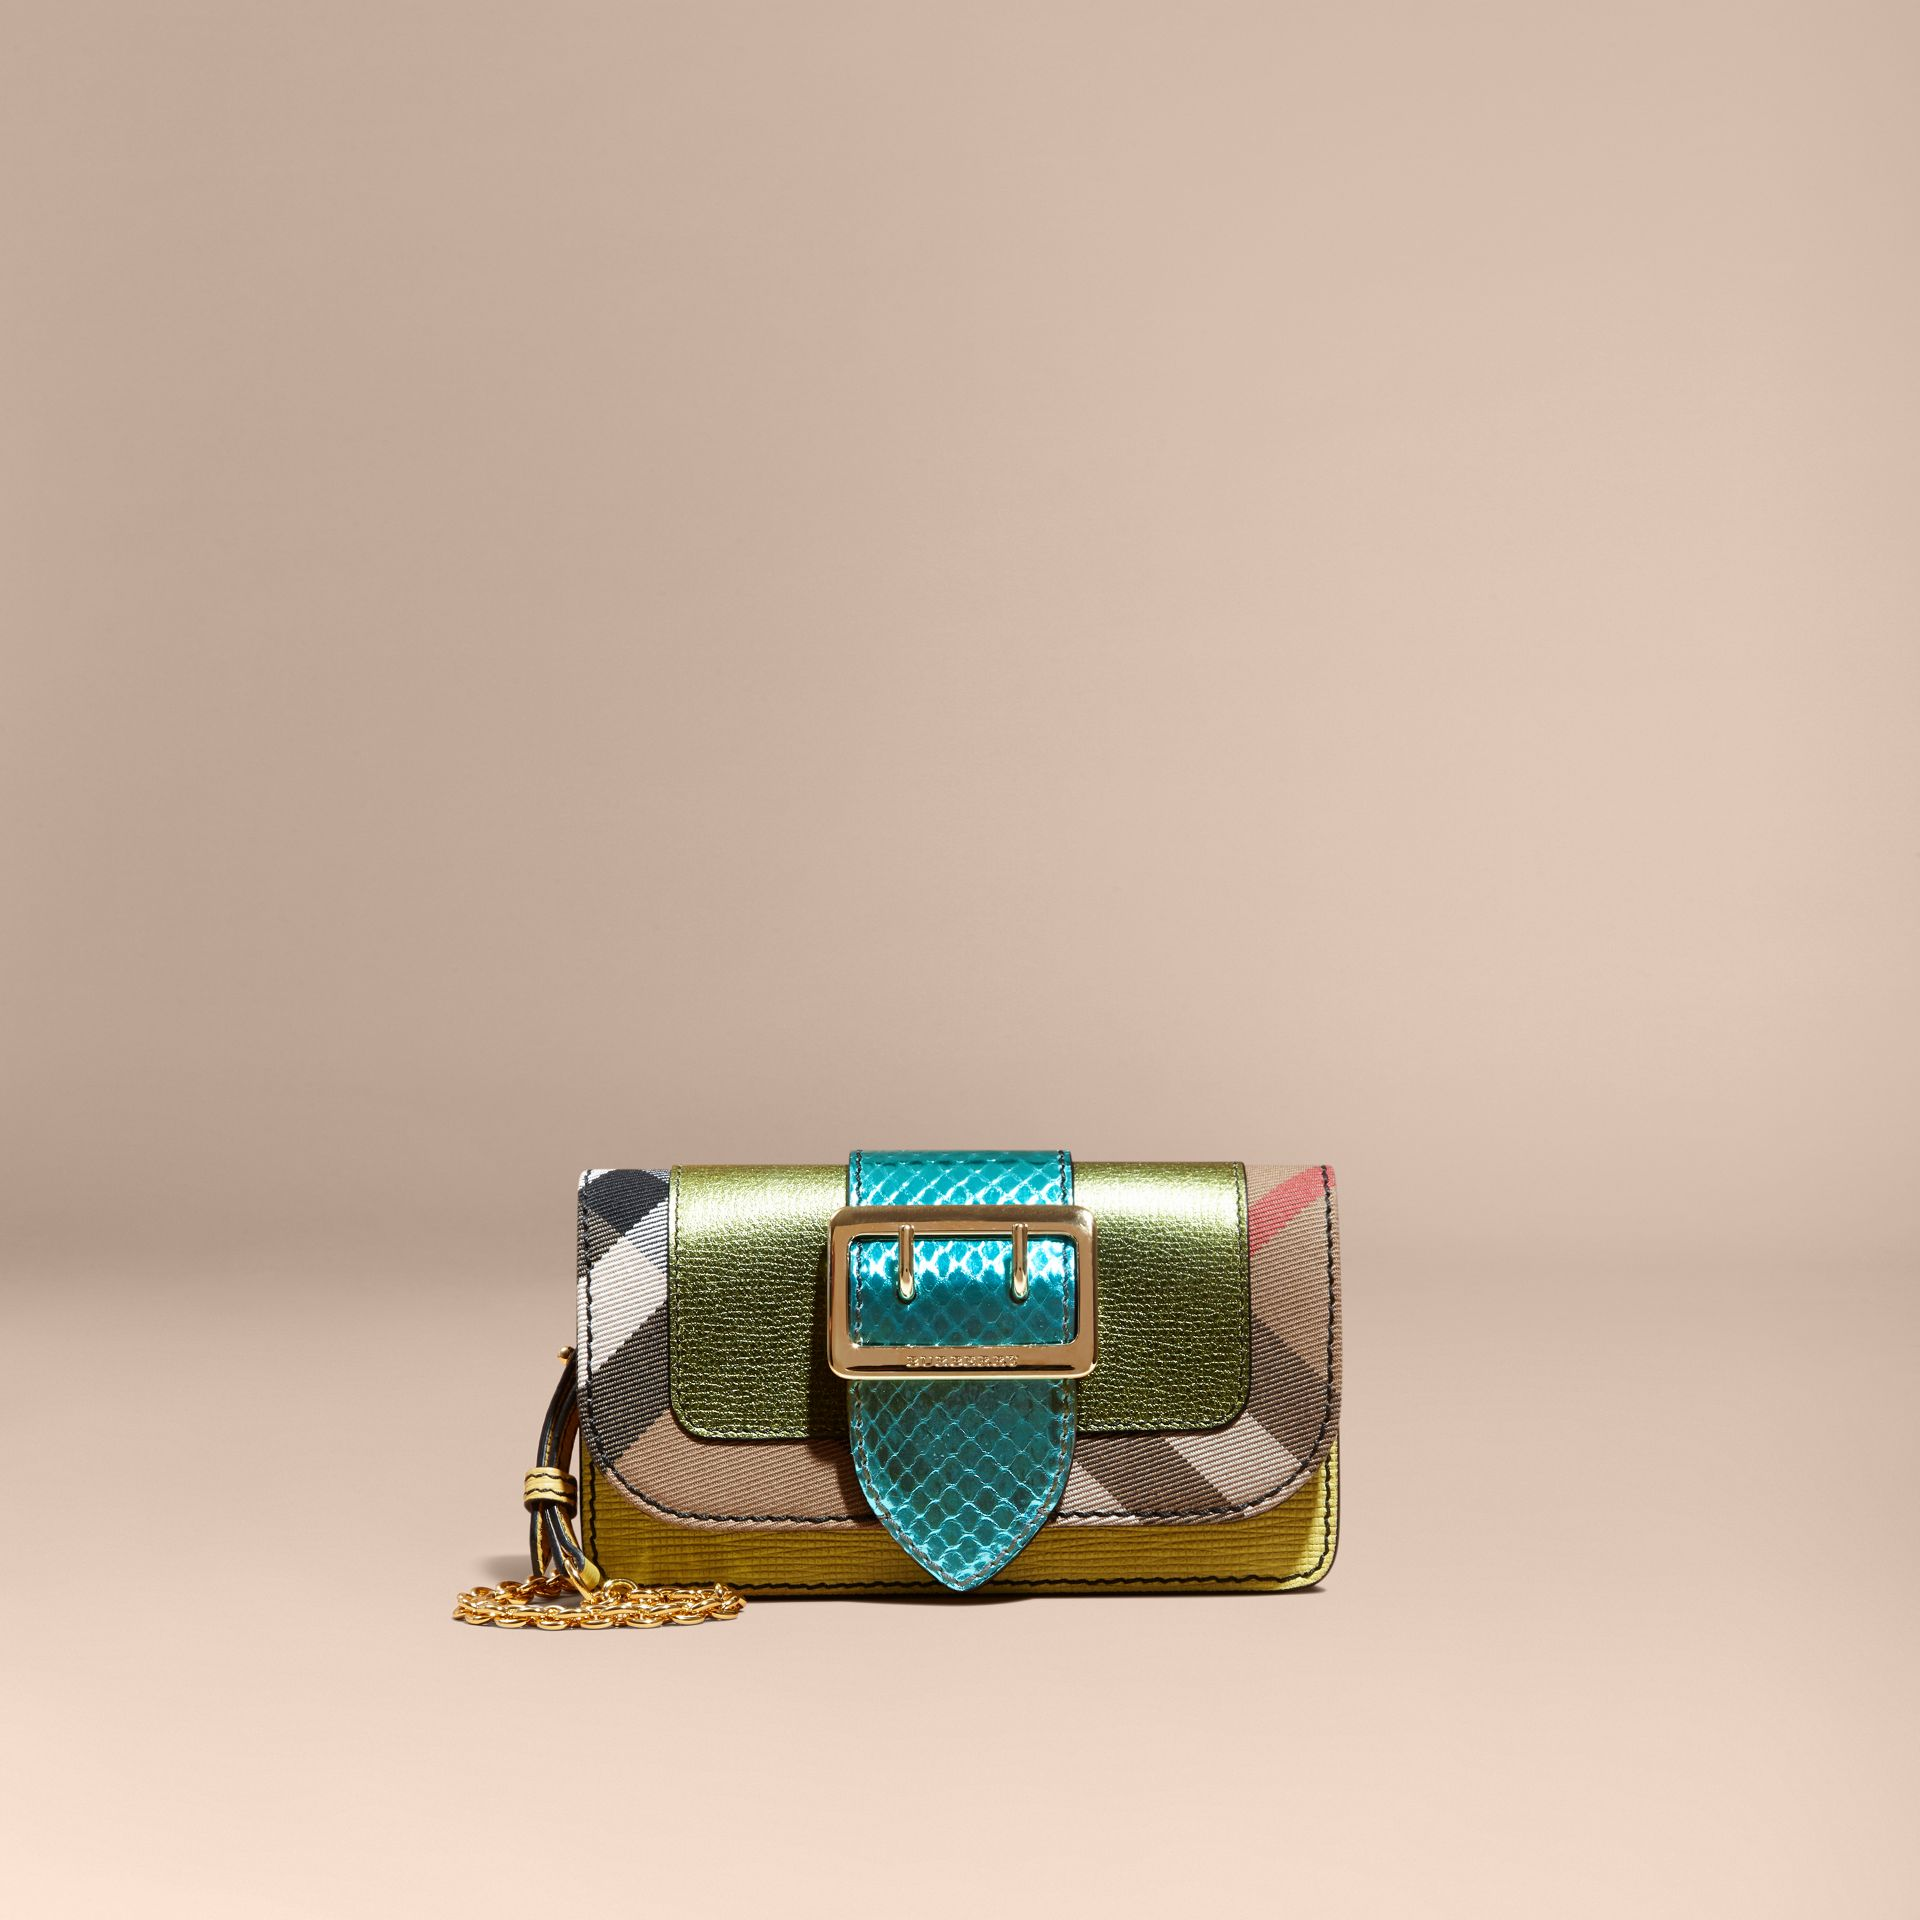 Olive green The Mini Buckle Bag in Leather and House Check - gallery image 8